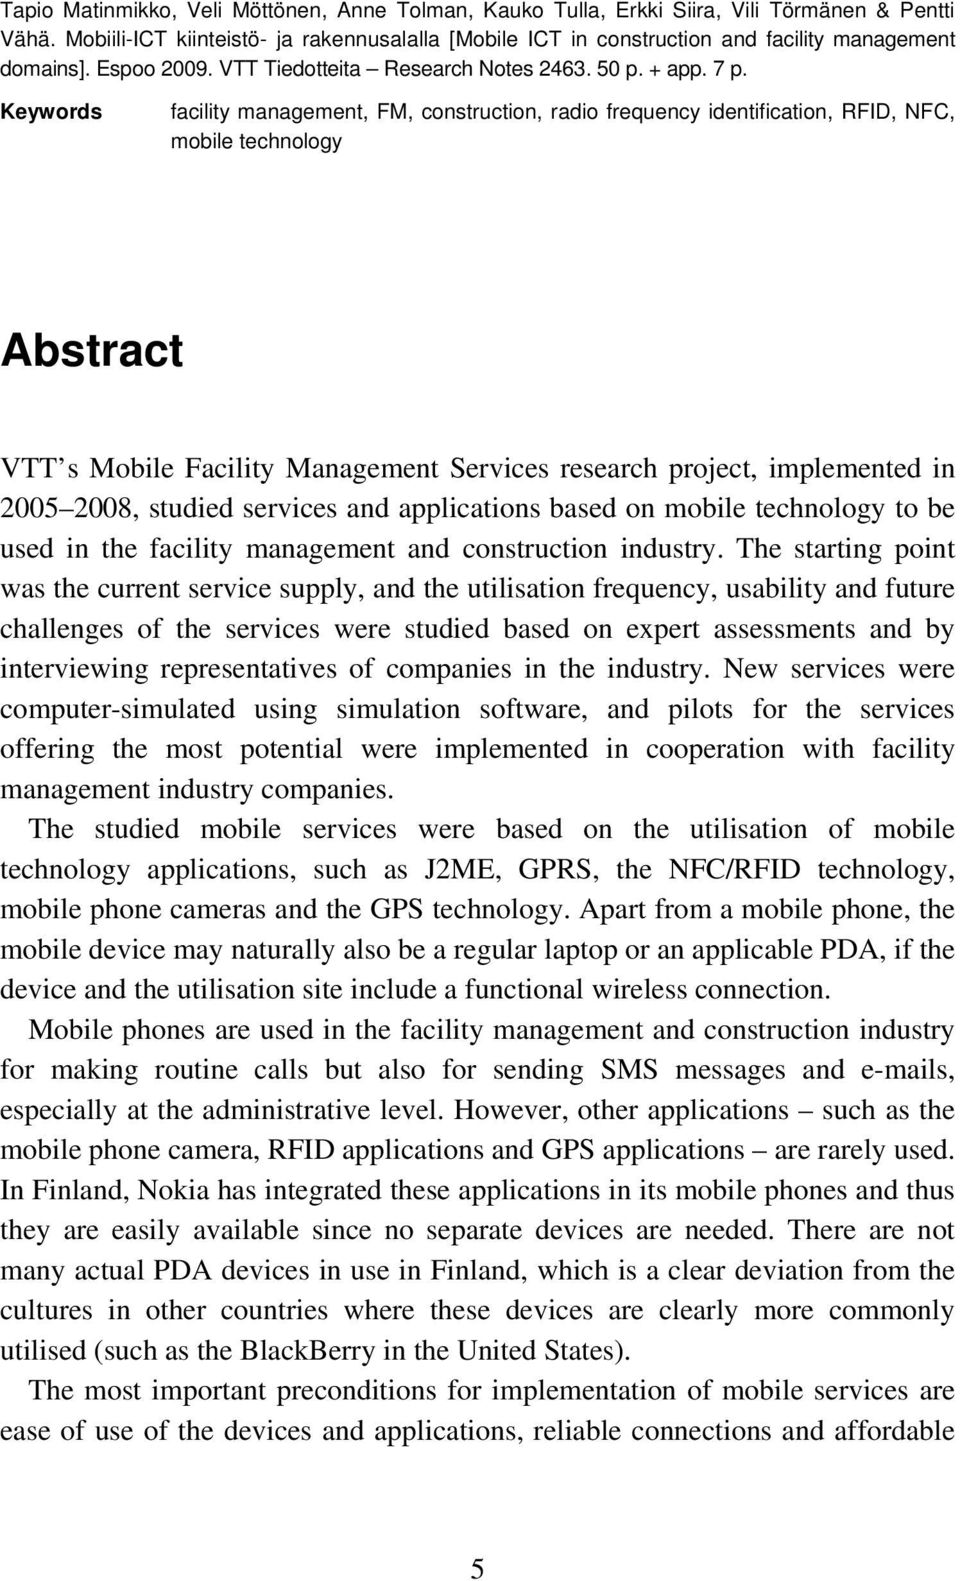 Keywords facility management, FM, construction, radio frequency identification, RFID, NFC, mobile technology Abstract VTT s Mobile Facility Management Services research project, implemented in 2005